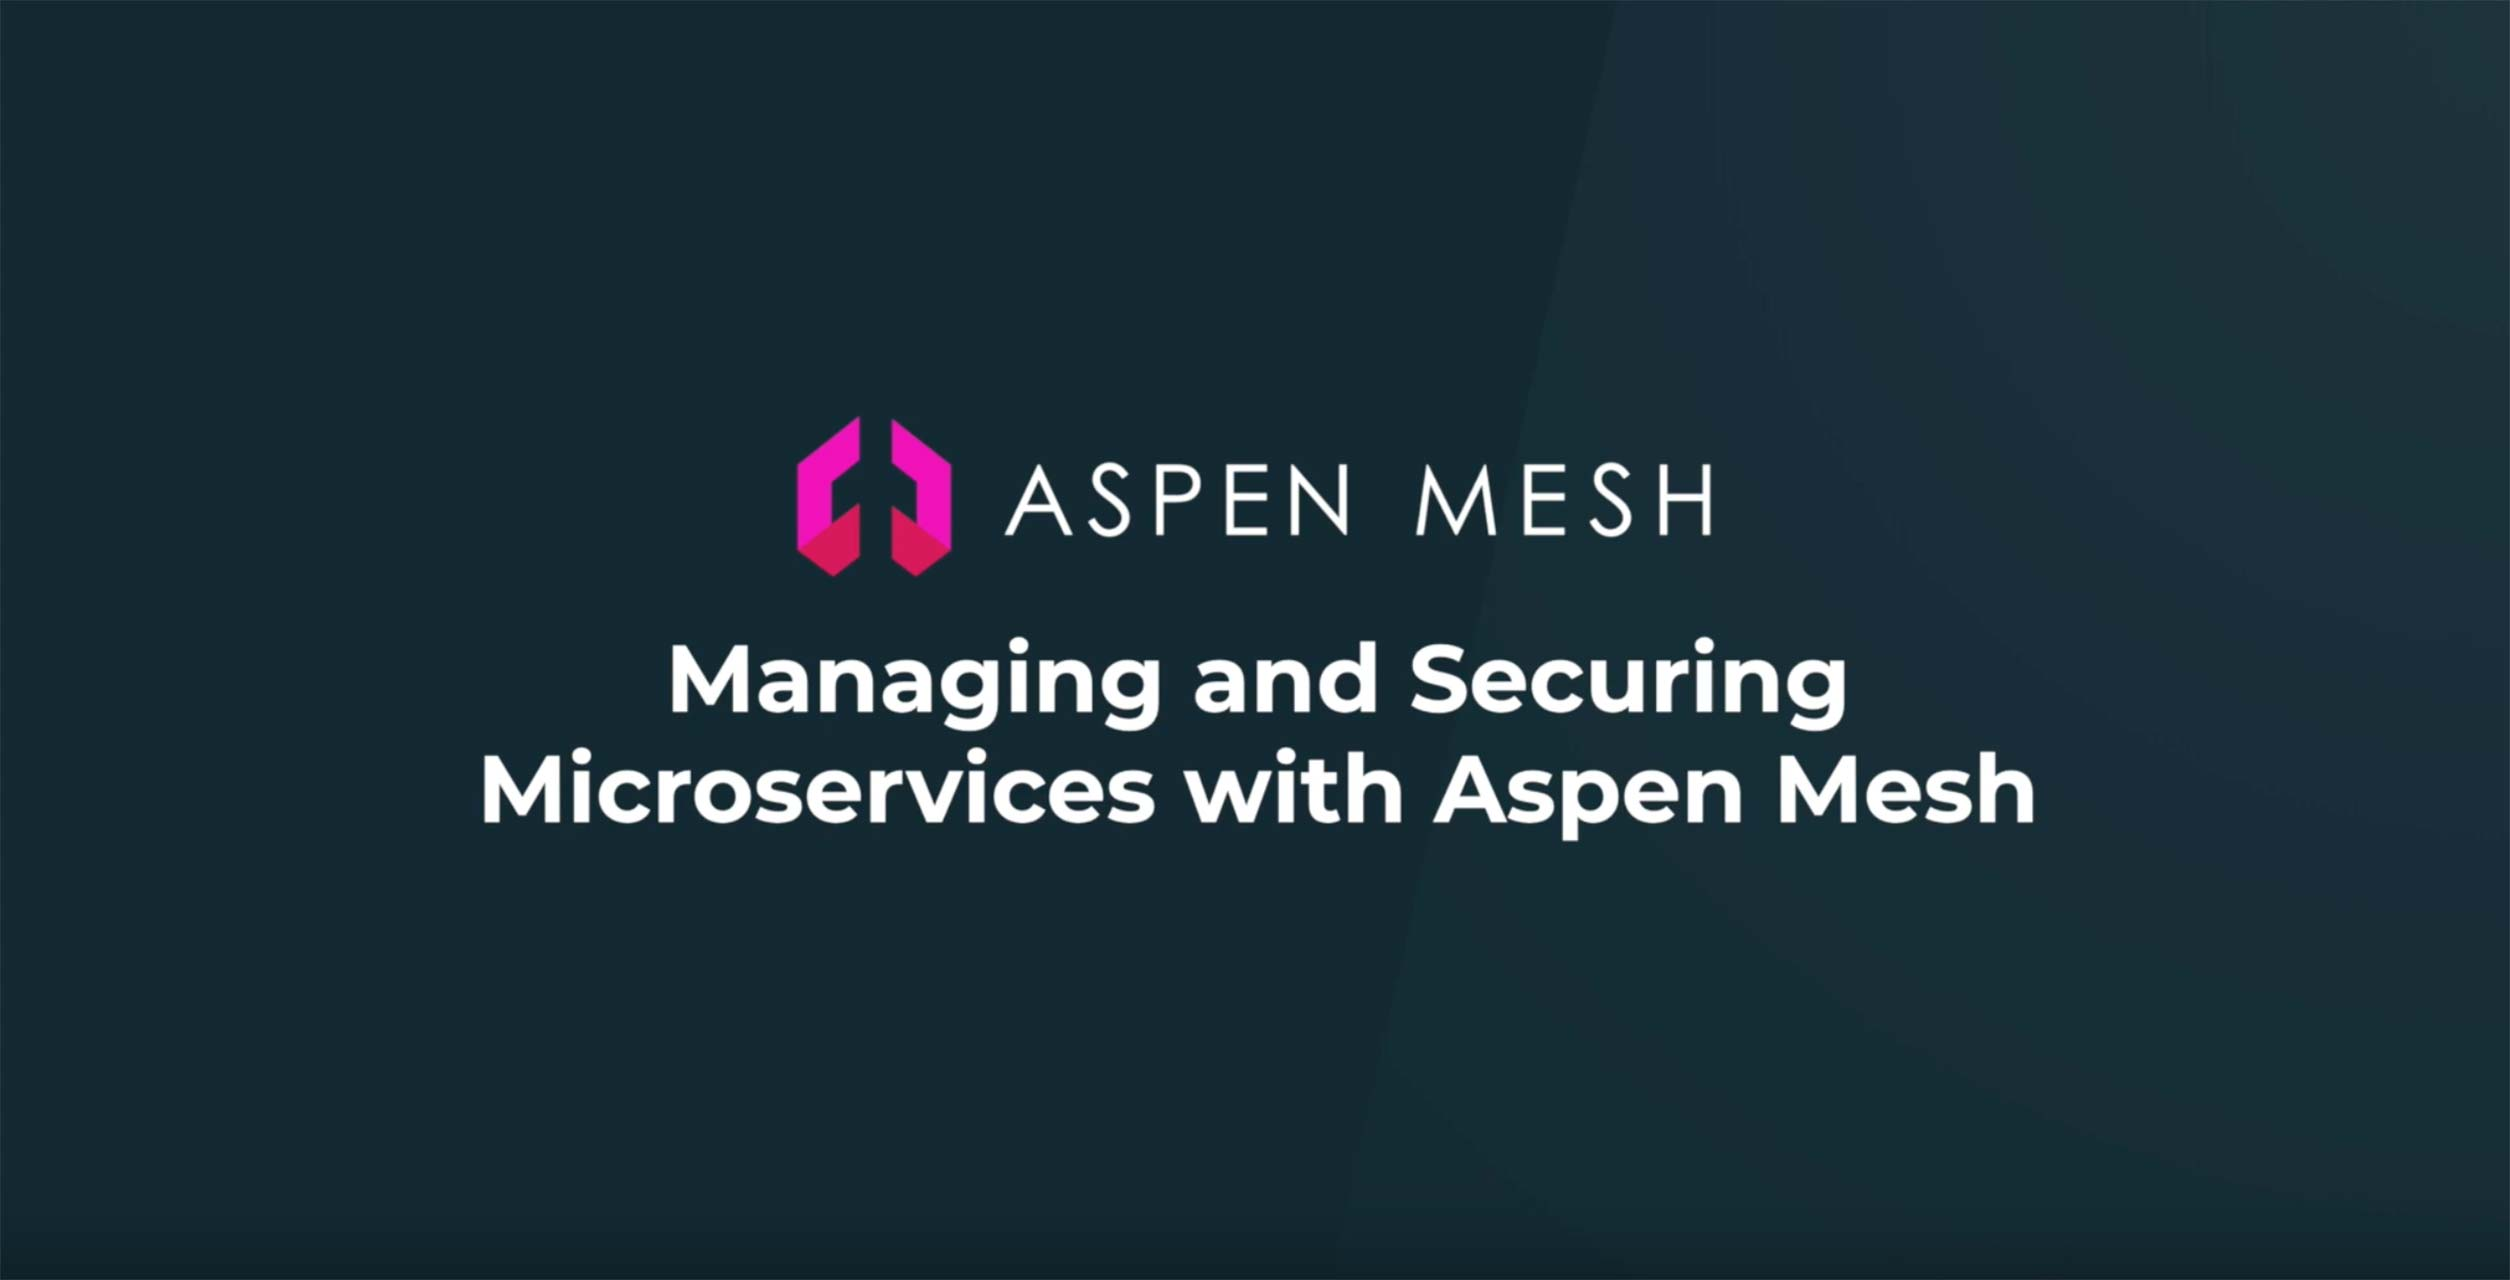 Managing and Securing Microservices with Aspen Mesh Service Mesh